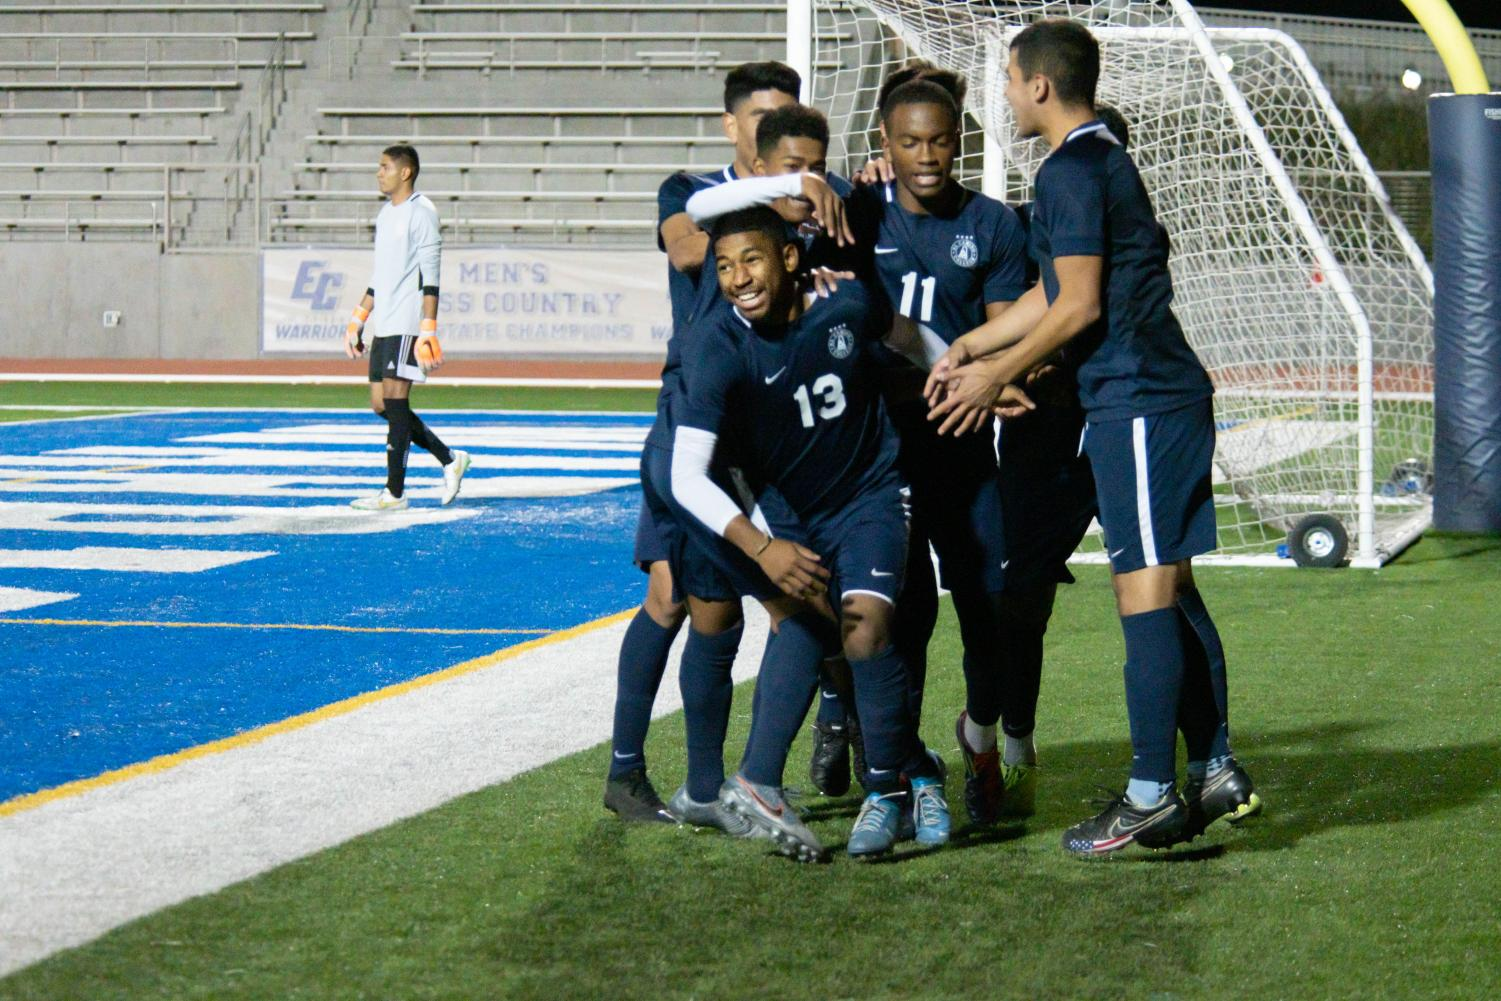 """Players from the El Camino College men's soccer  team surround and cheer on Melvyn Perez-Cortez, No. 13, after he scored a goal against Orange Coast College in the 48th minute of the match at Murdock Stadium on Tuesday, Nov. 26. """"At halftime we had a speech with the coach and he said to 'come out strong' and that's what we did and it benefited us a lot and [the game] went in our favor,"""" Perez-Cortez said. Rosemary Montalvo/The Union"""